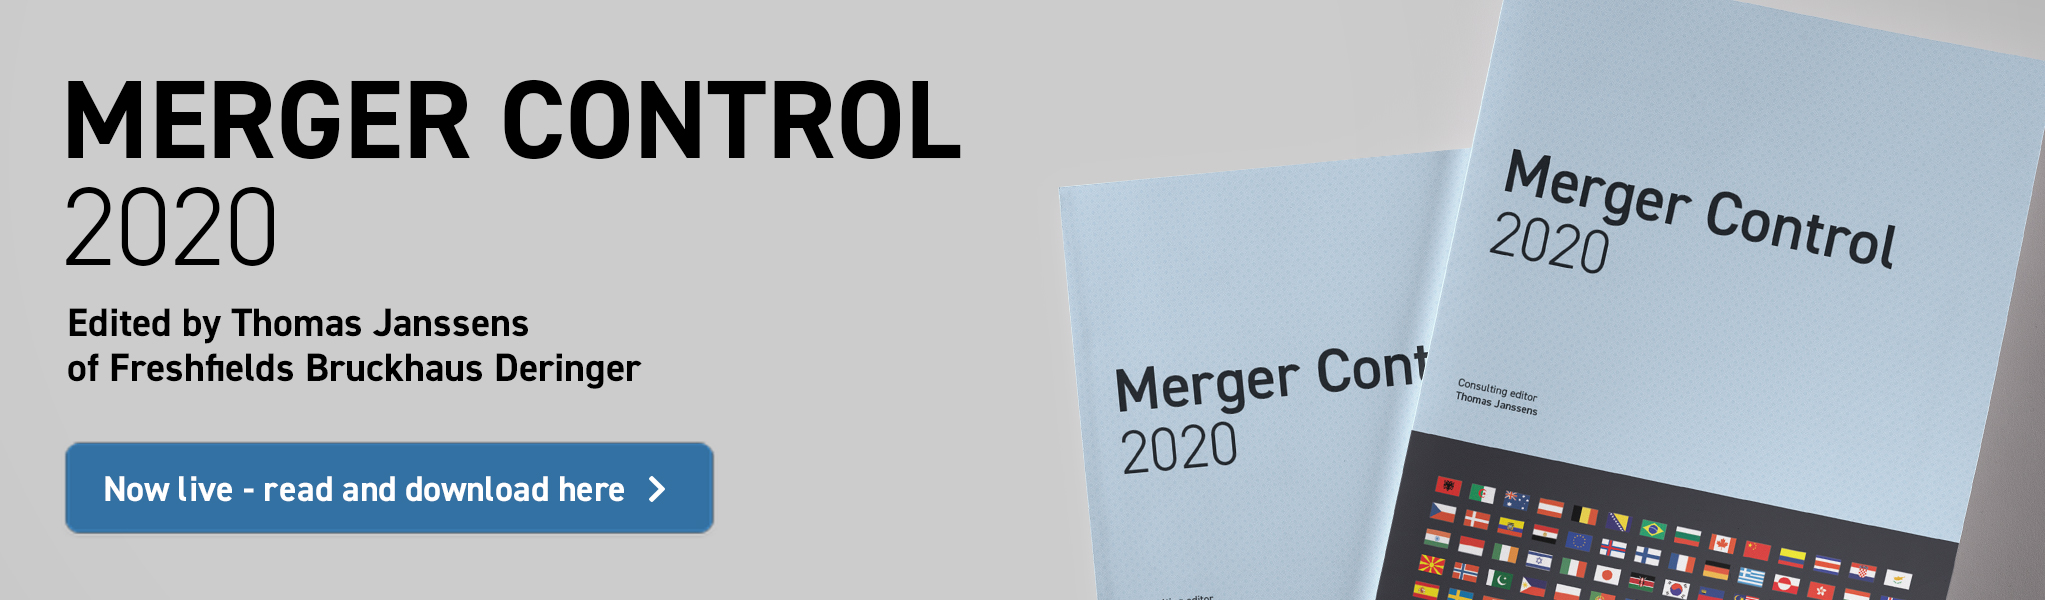 Merger Control 2020 - Now live - read and download here!